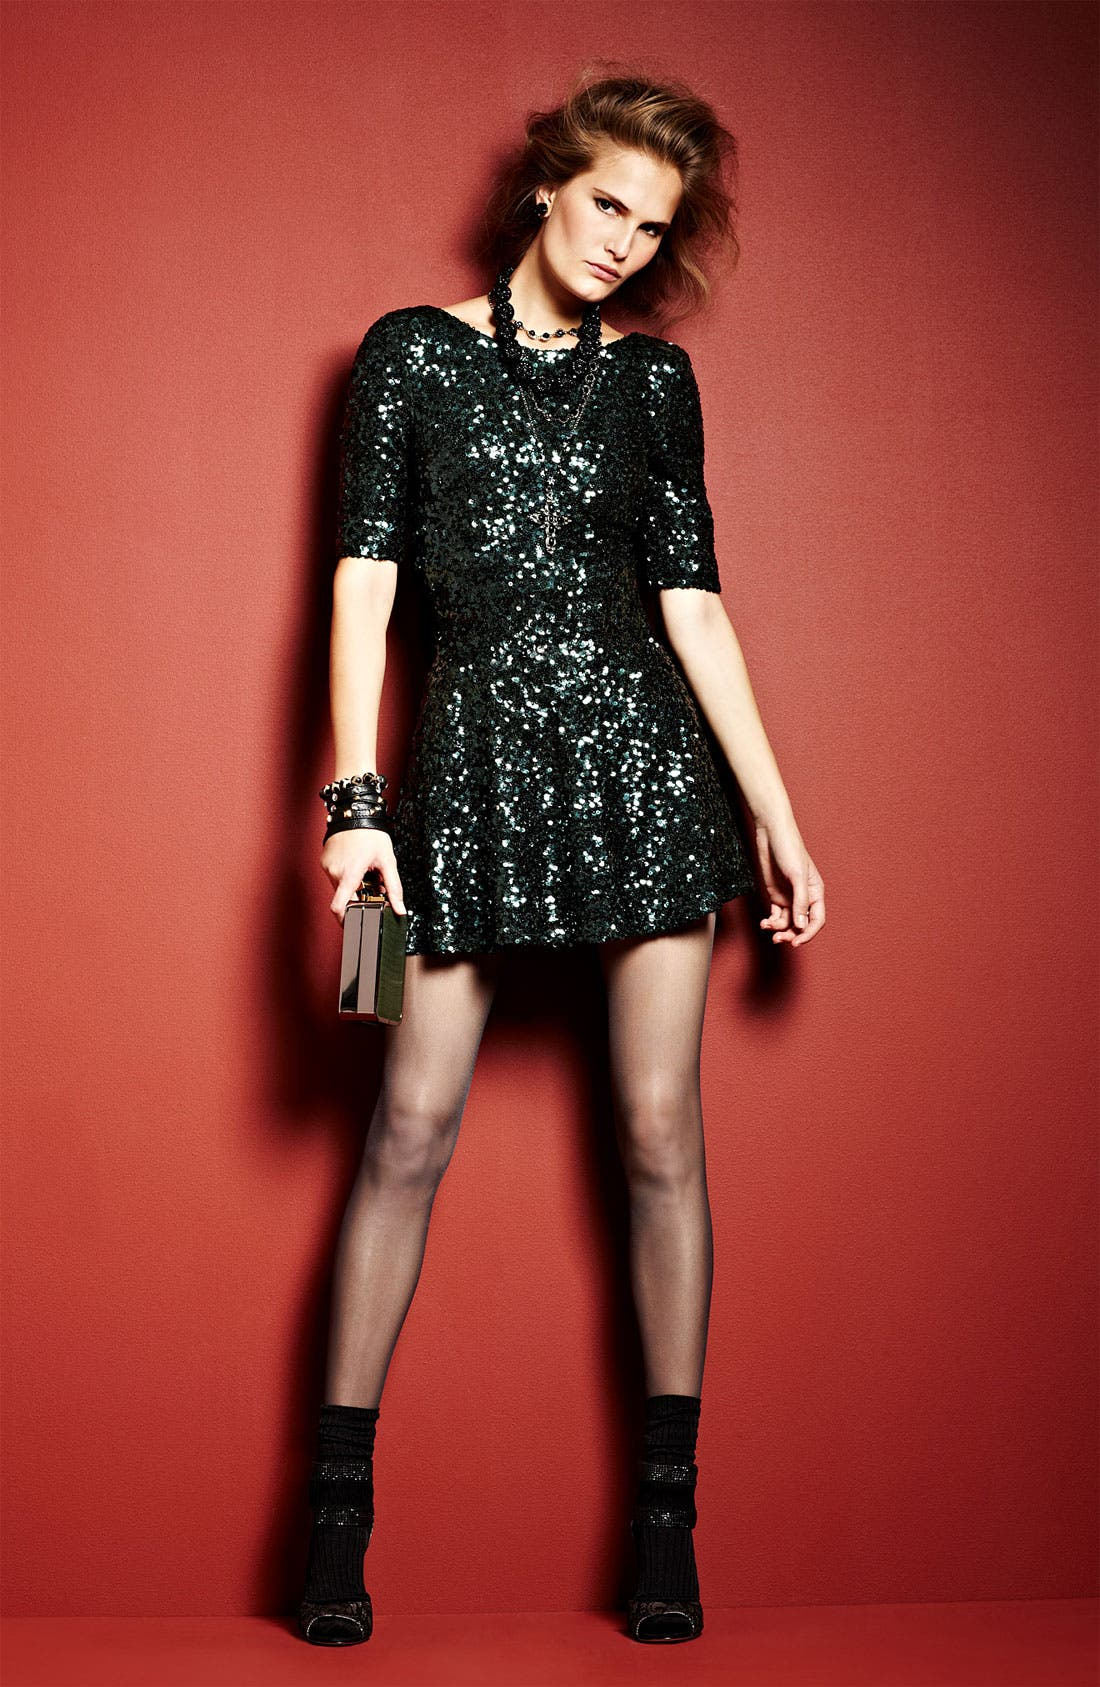 Main Image - French Connection Dress & Accessories